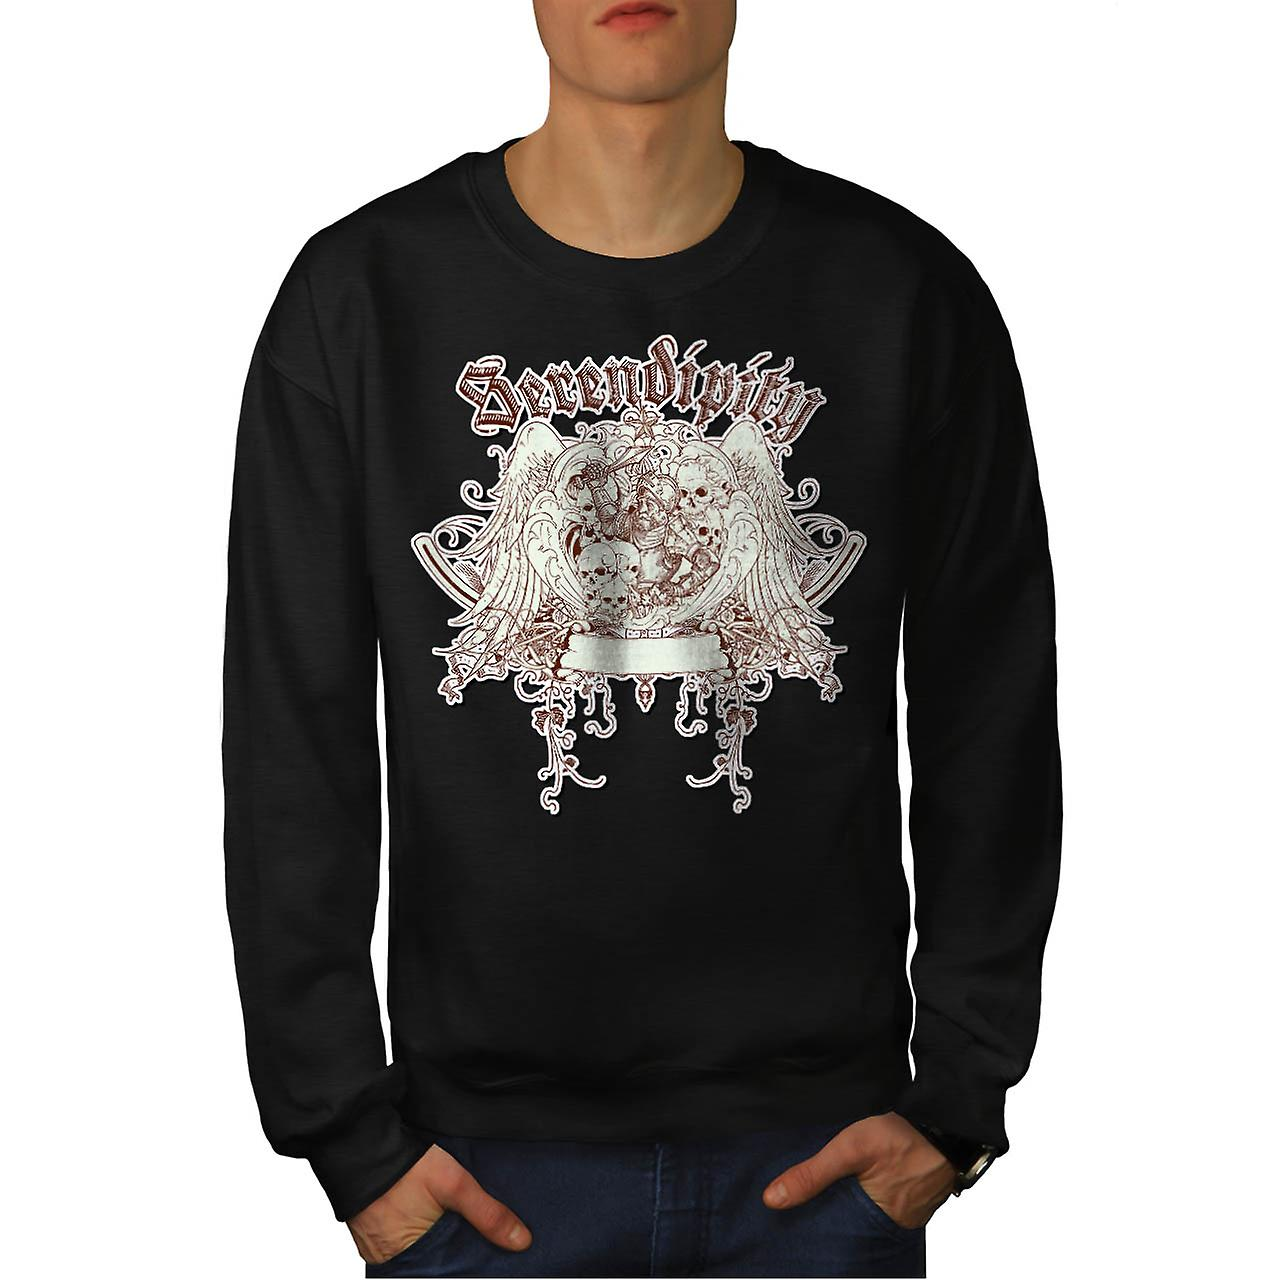 Serendipity Skull Fashion Men Black Sweatshirt | Wellcoda